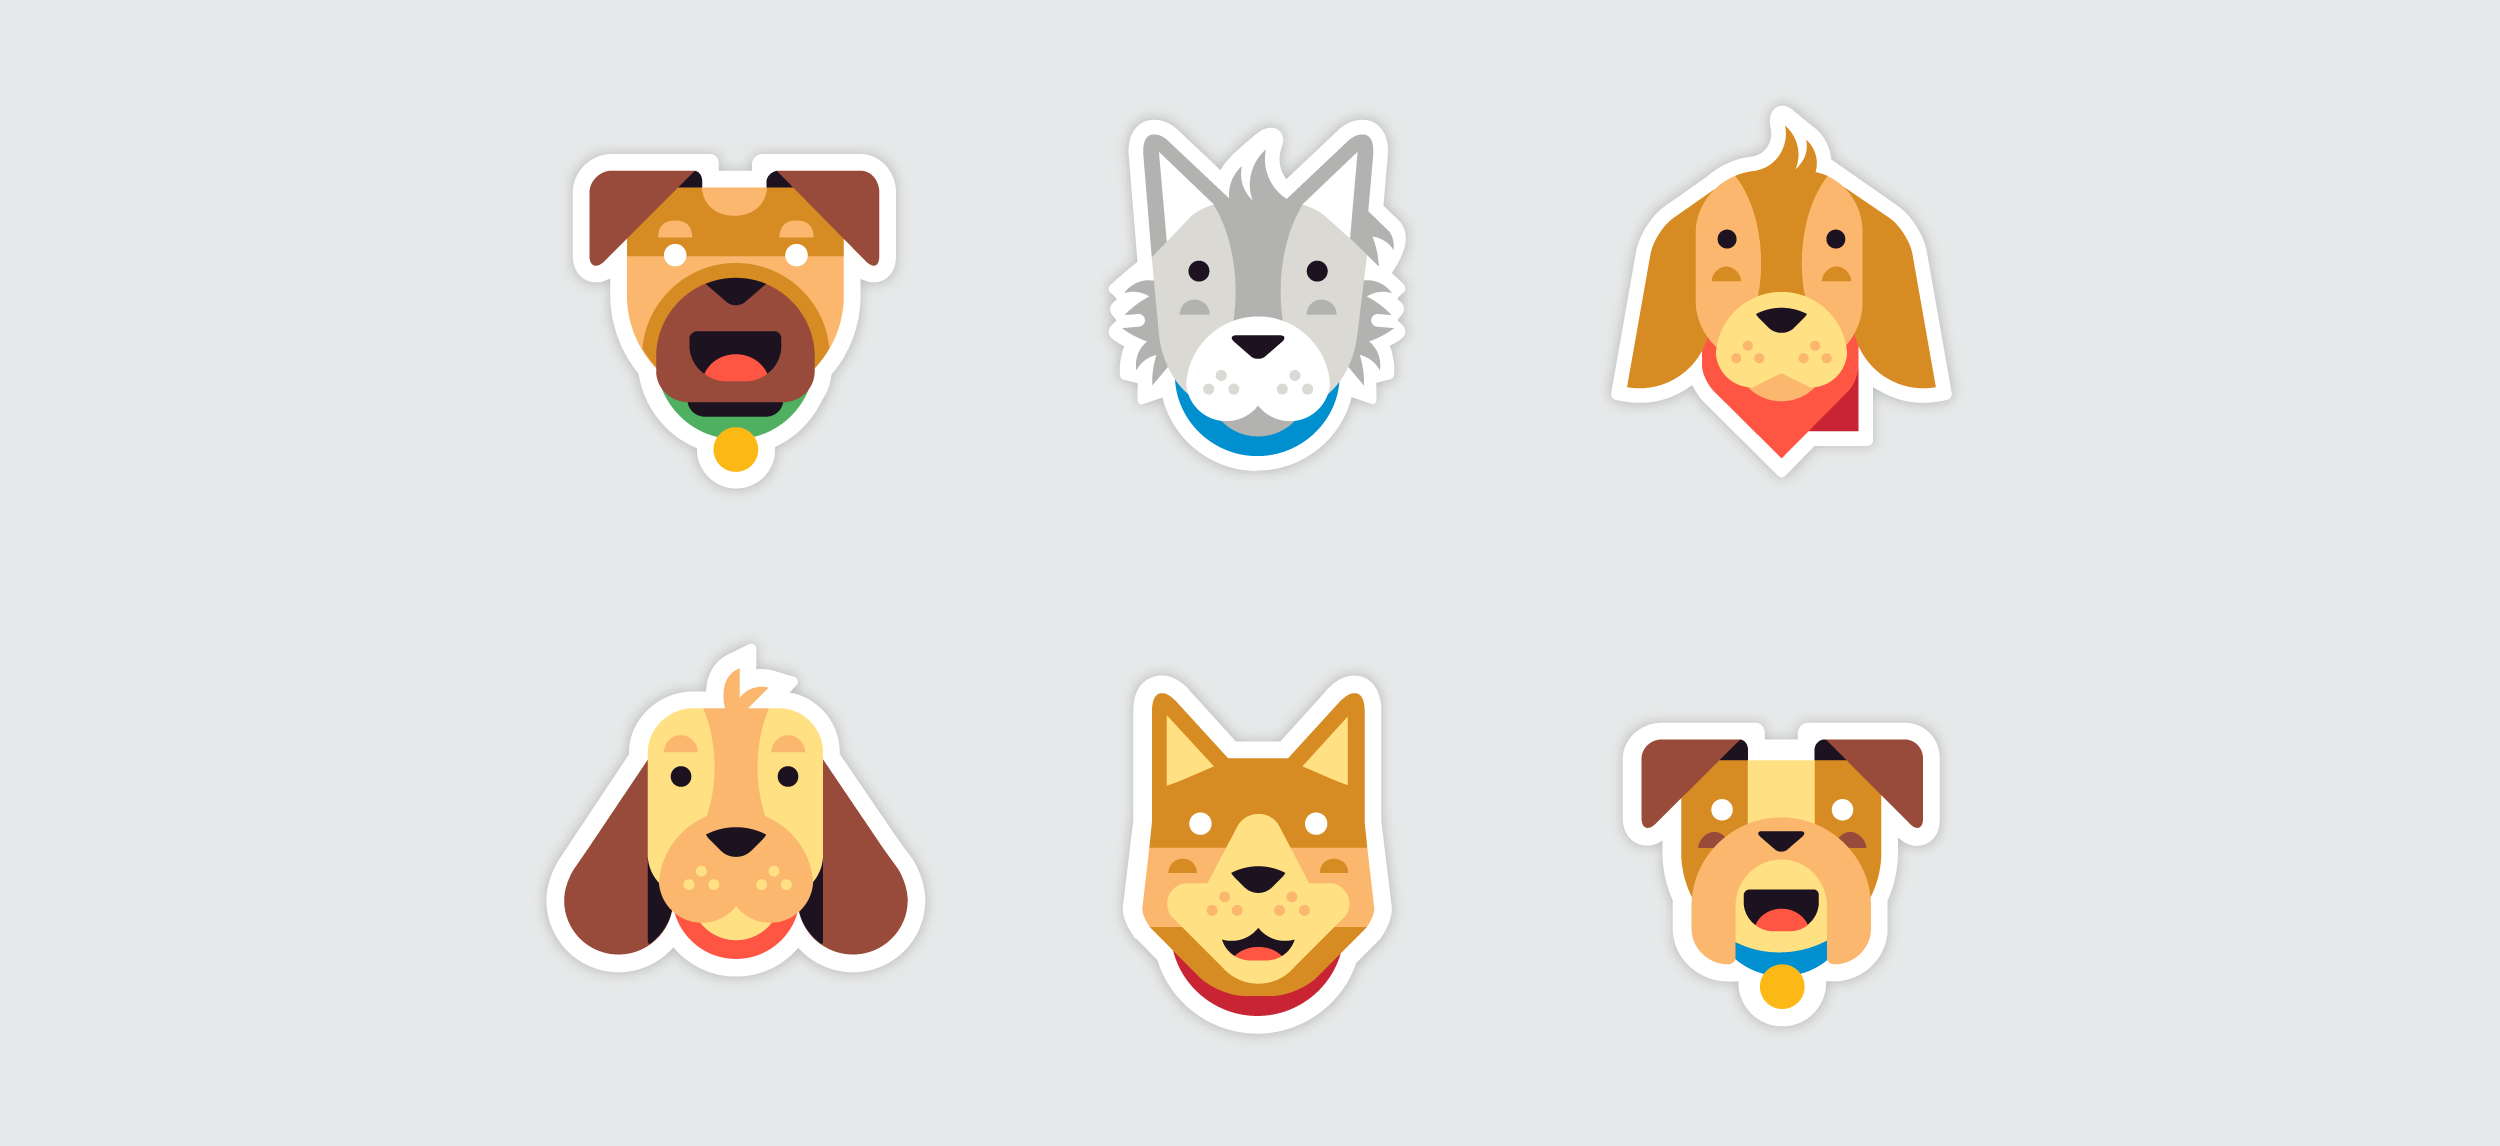 Kik Emoji Collections by Matt Anderson - Dogs